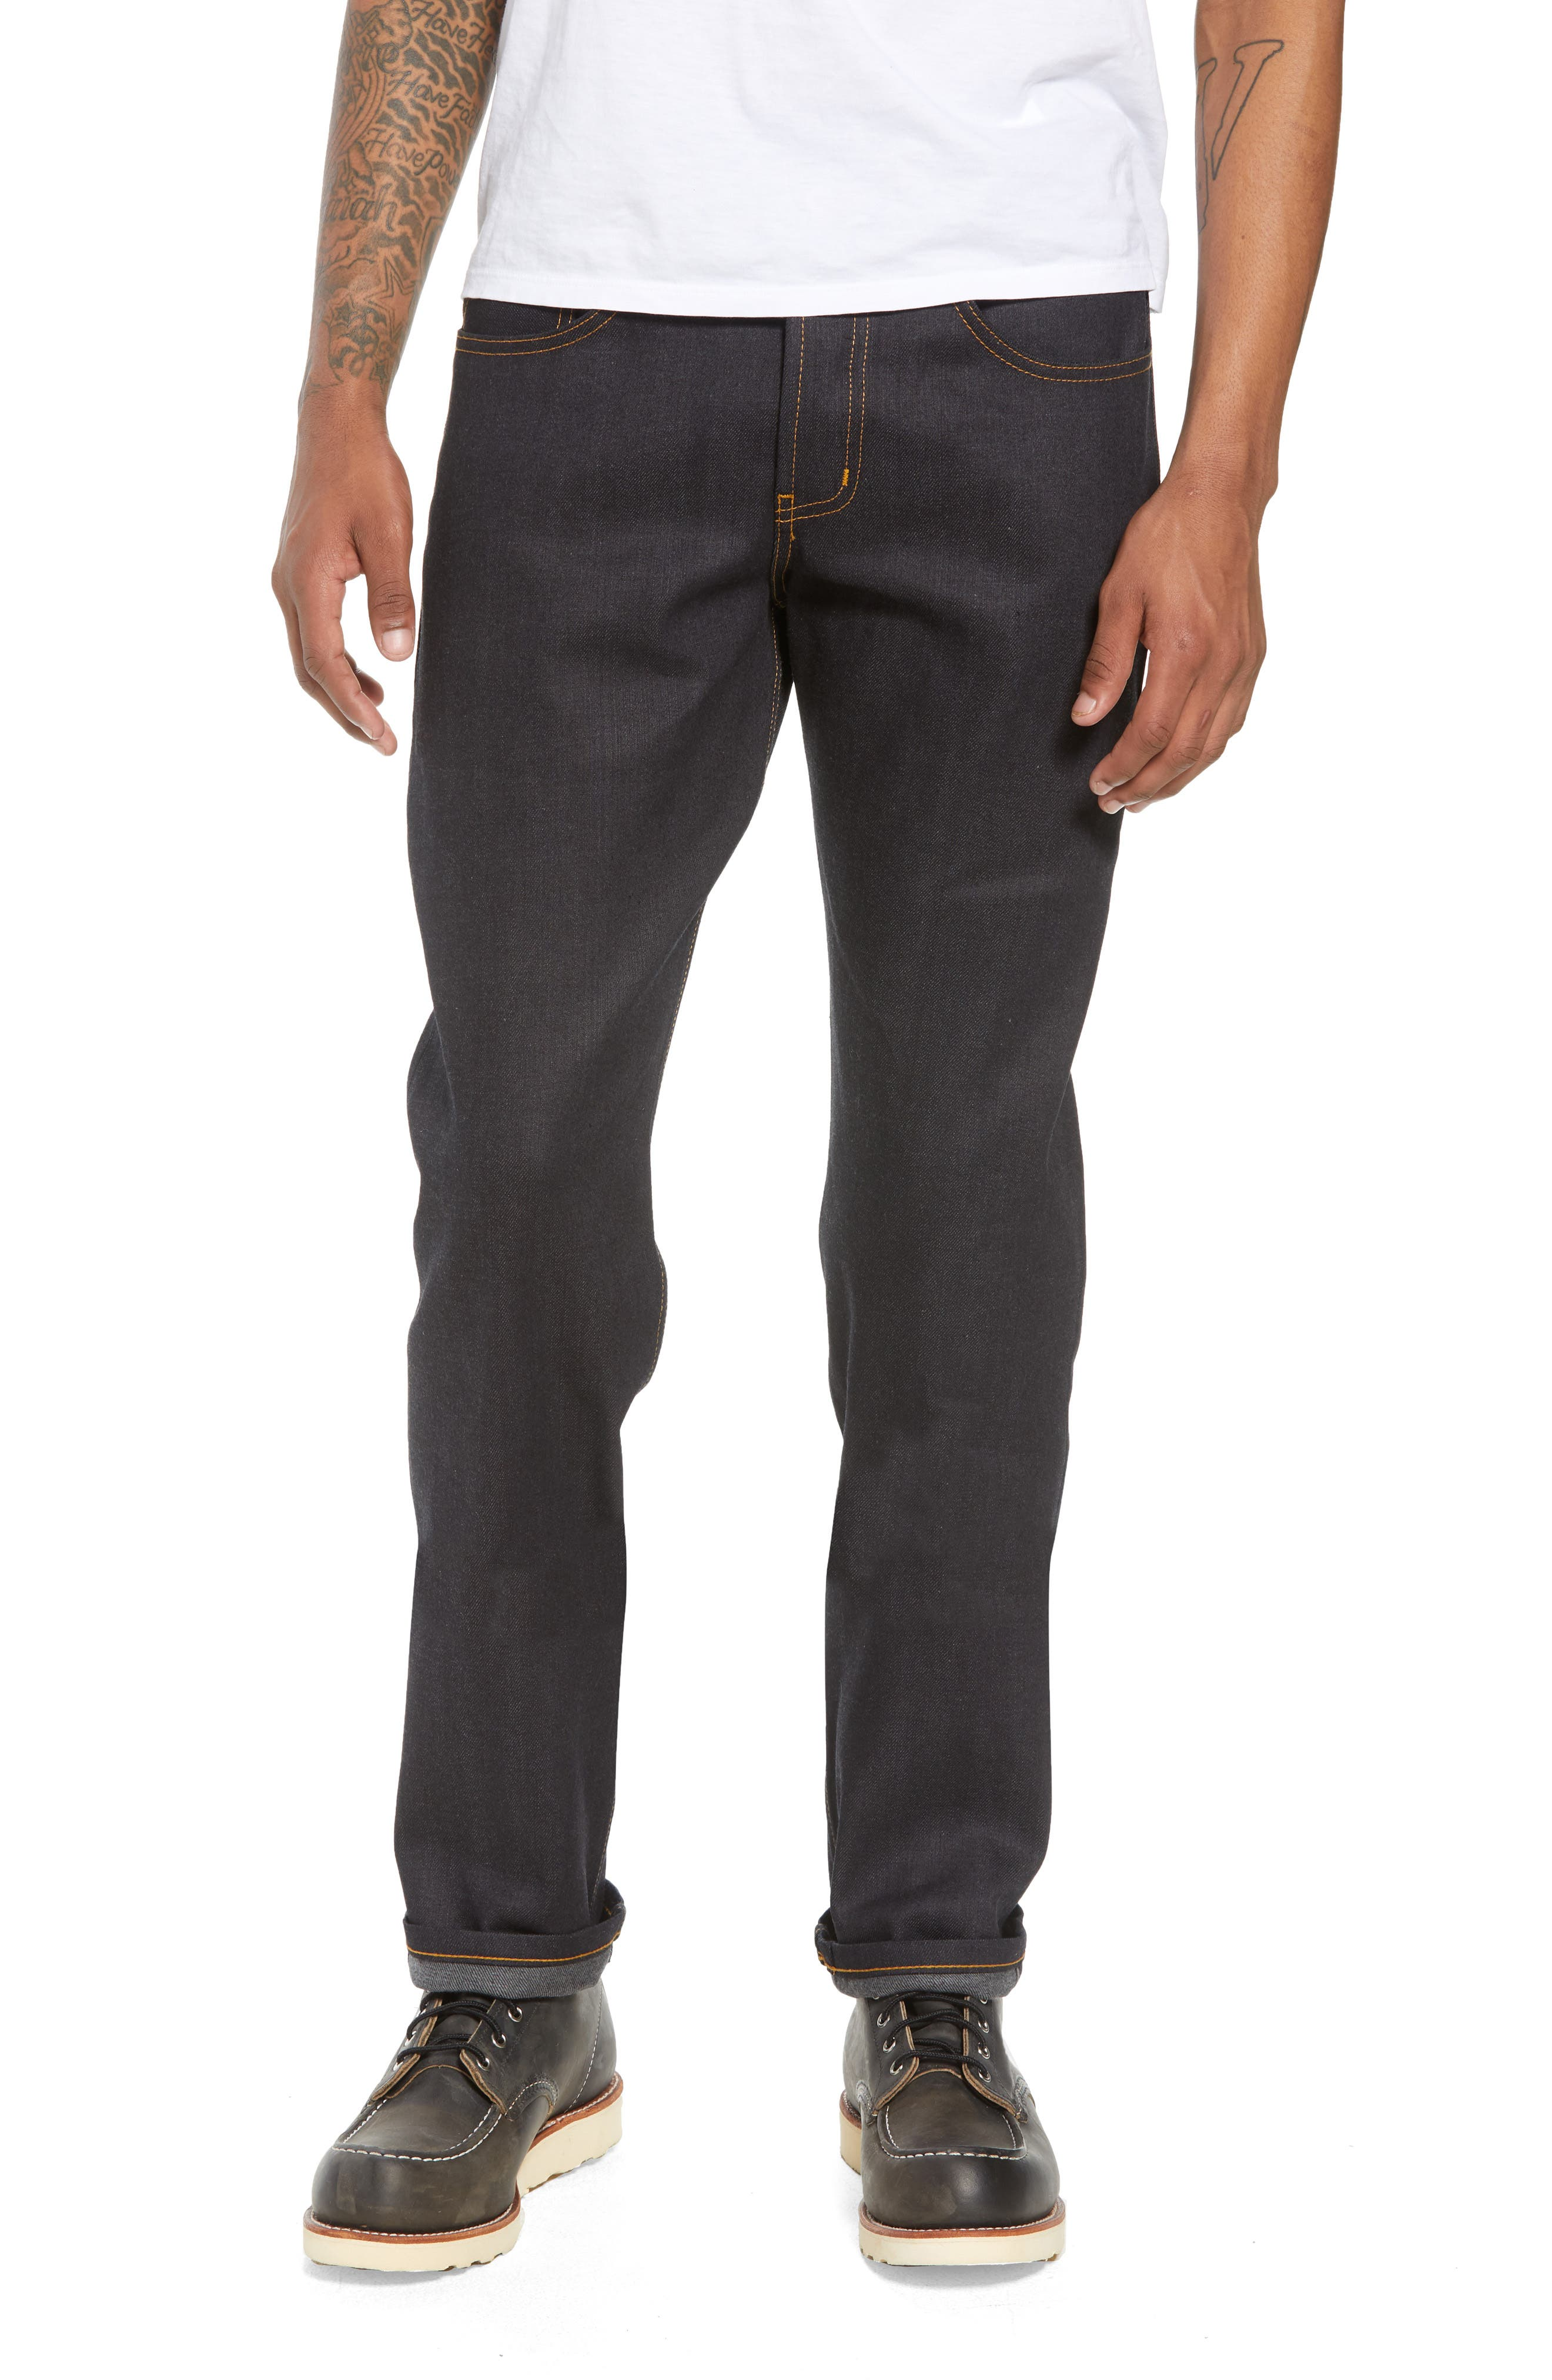 NAKED & FAMOUS DENIM Weird Guy Slim Fit Jeans, Main, color, DEEP INDIGO STRETCH SELVEDGE